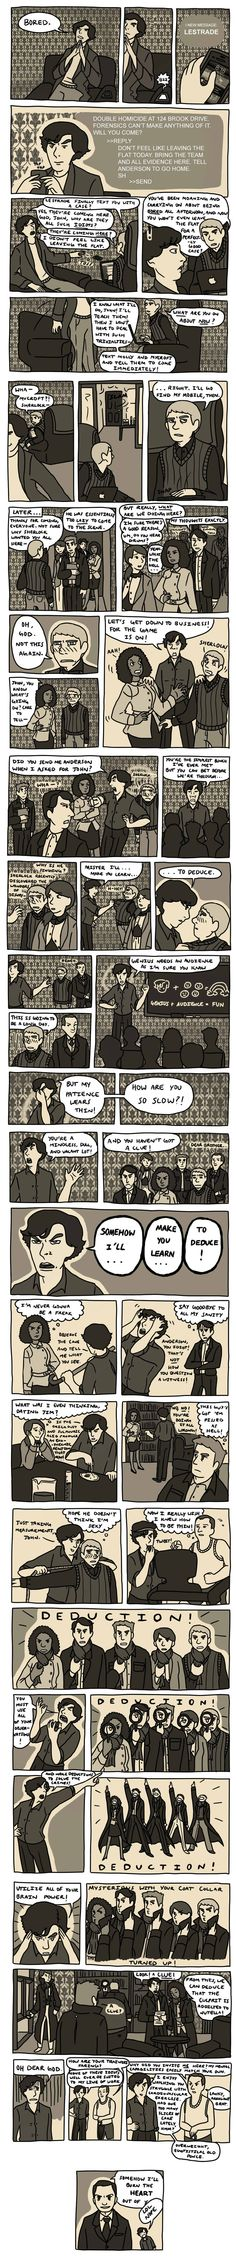 Sherlock/Mulan Mashup! Strangely enough, a WIN.